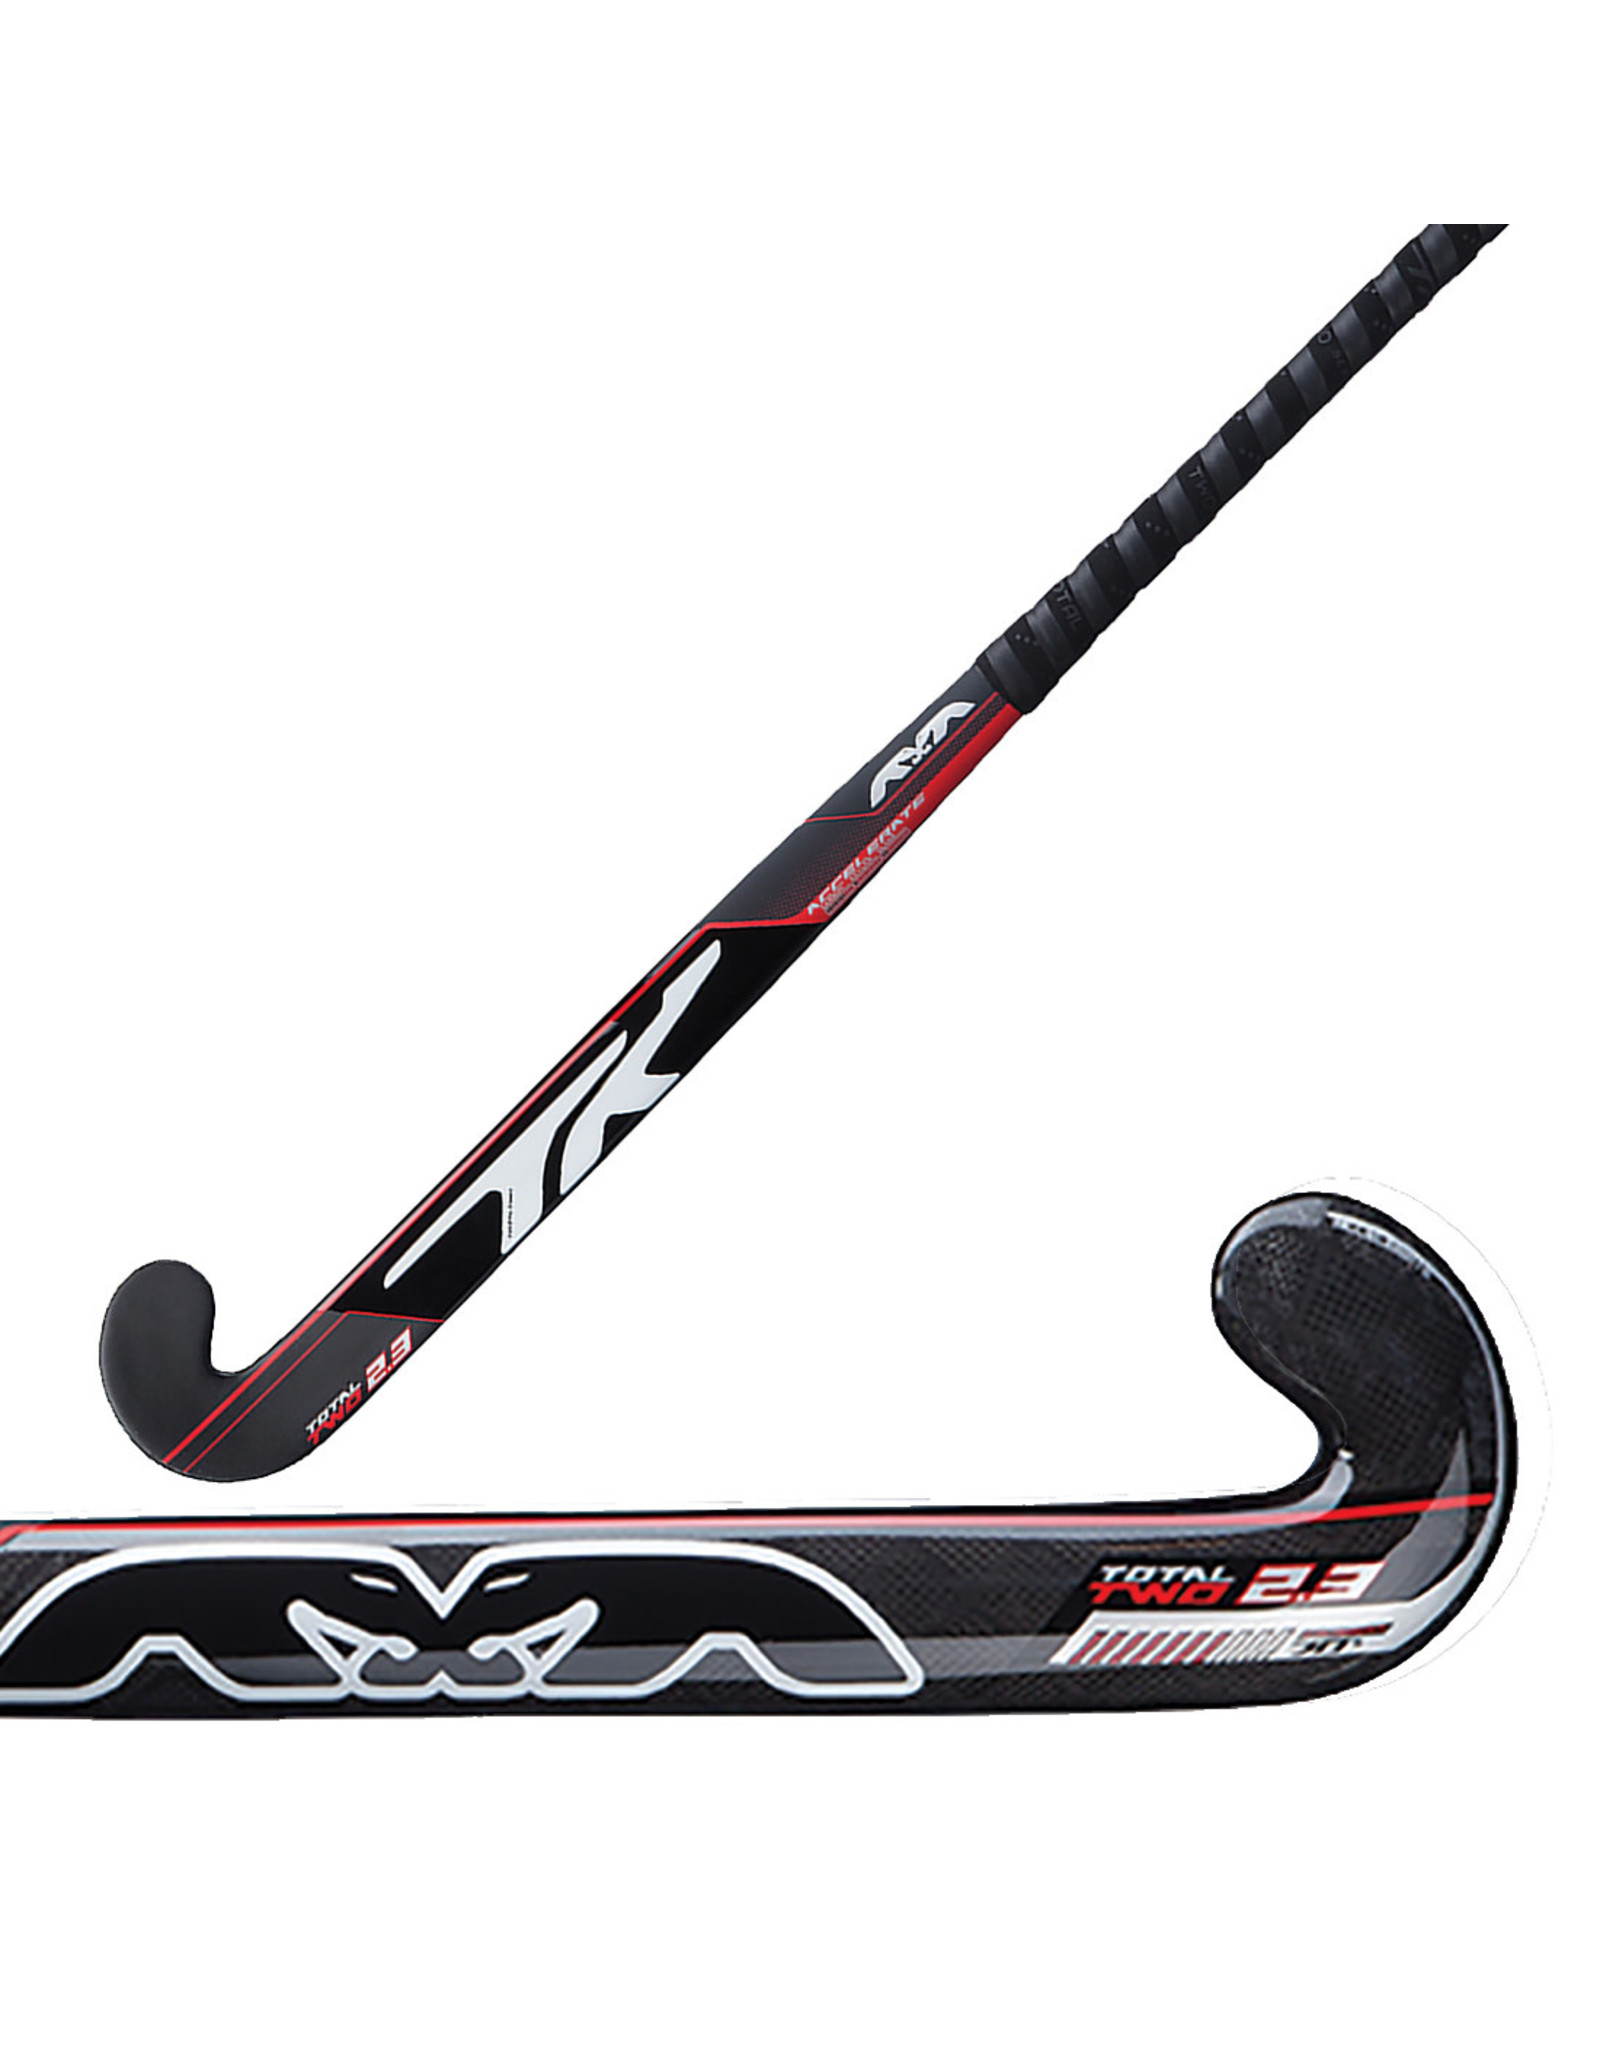 TK TK TOTAL TWO 2.3 ACCELERATE STICK 20-57 CON